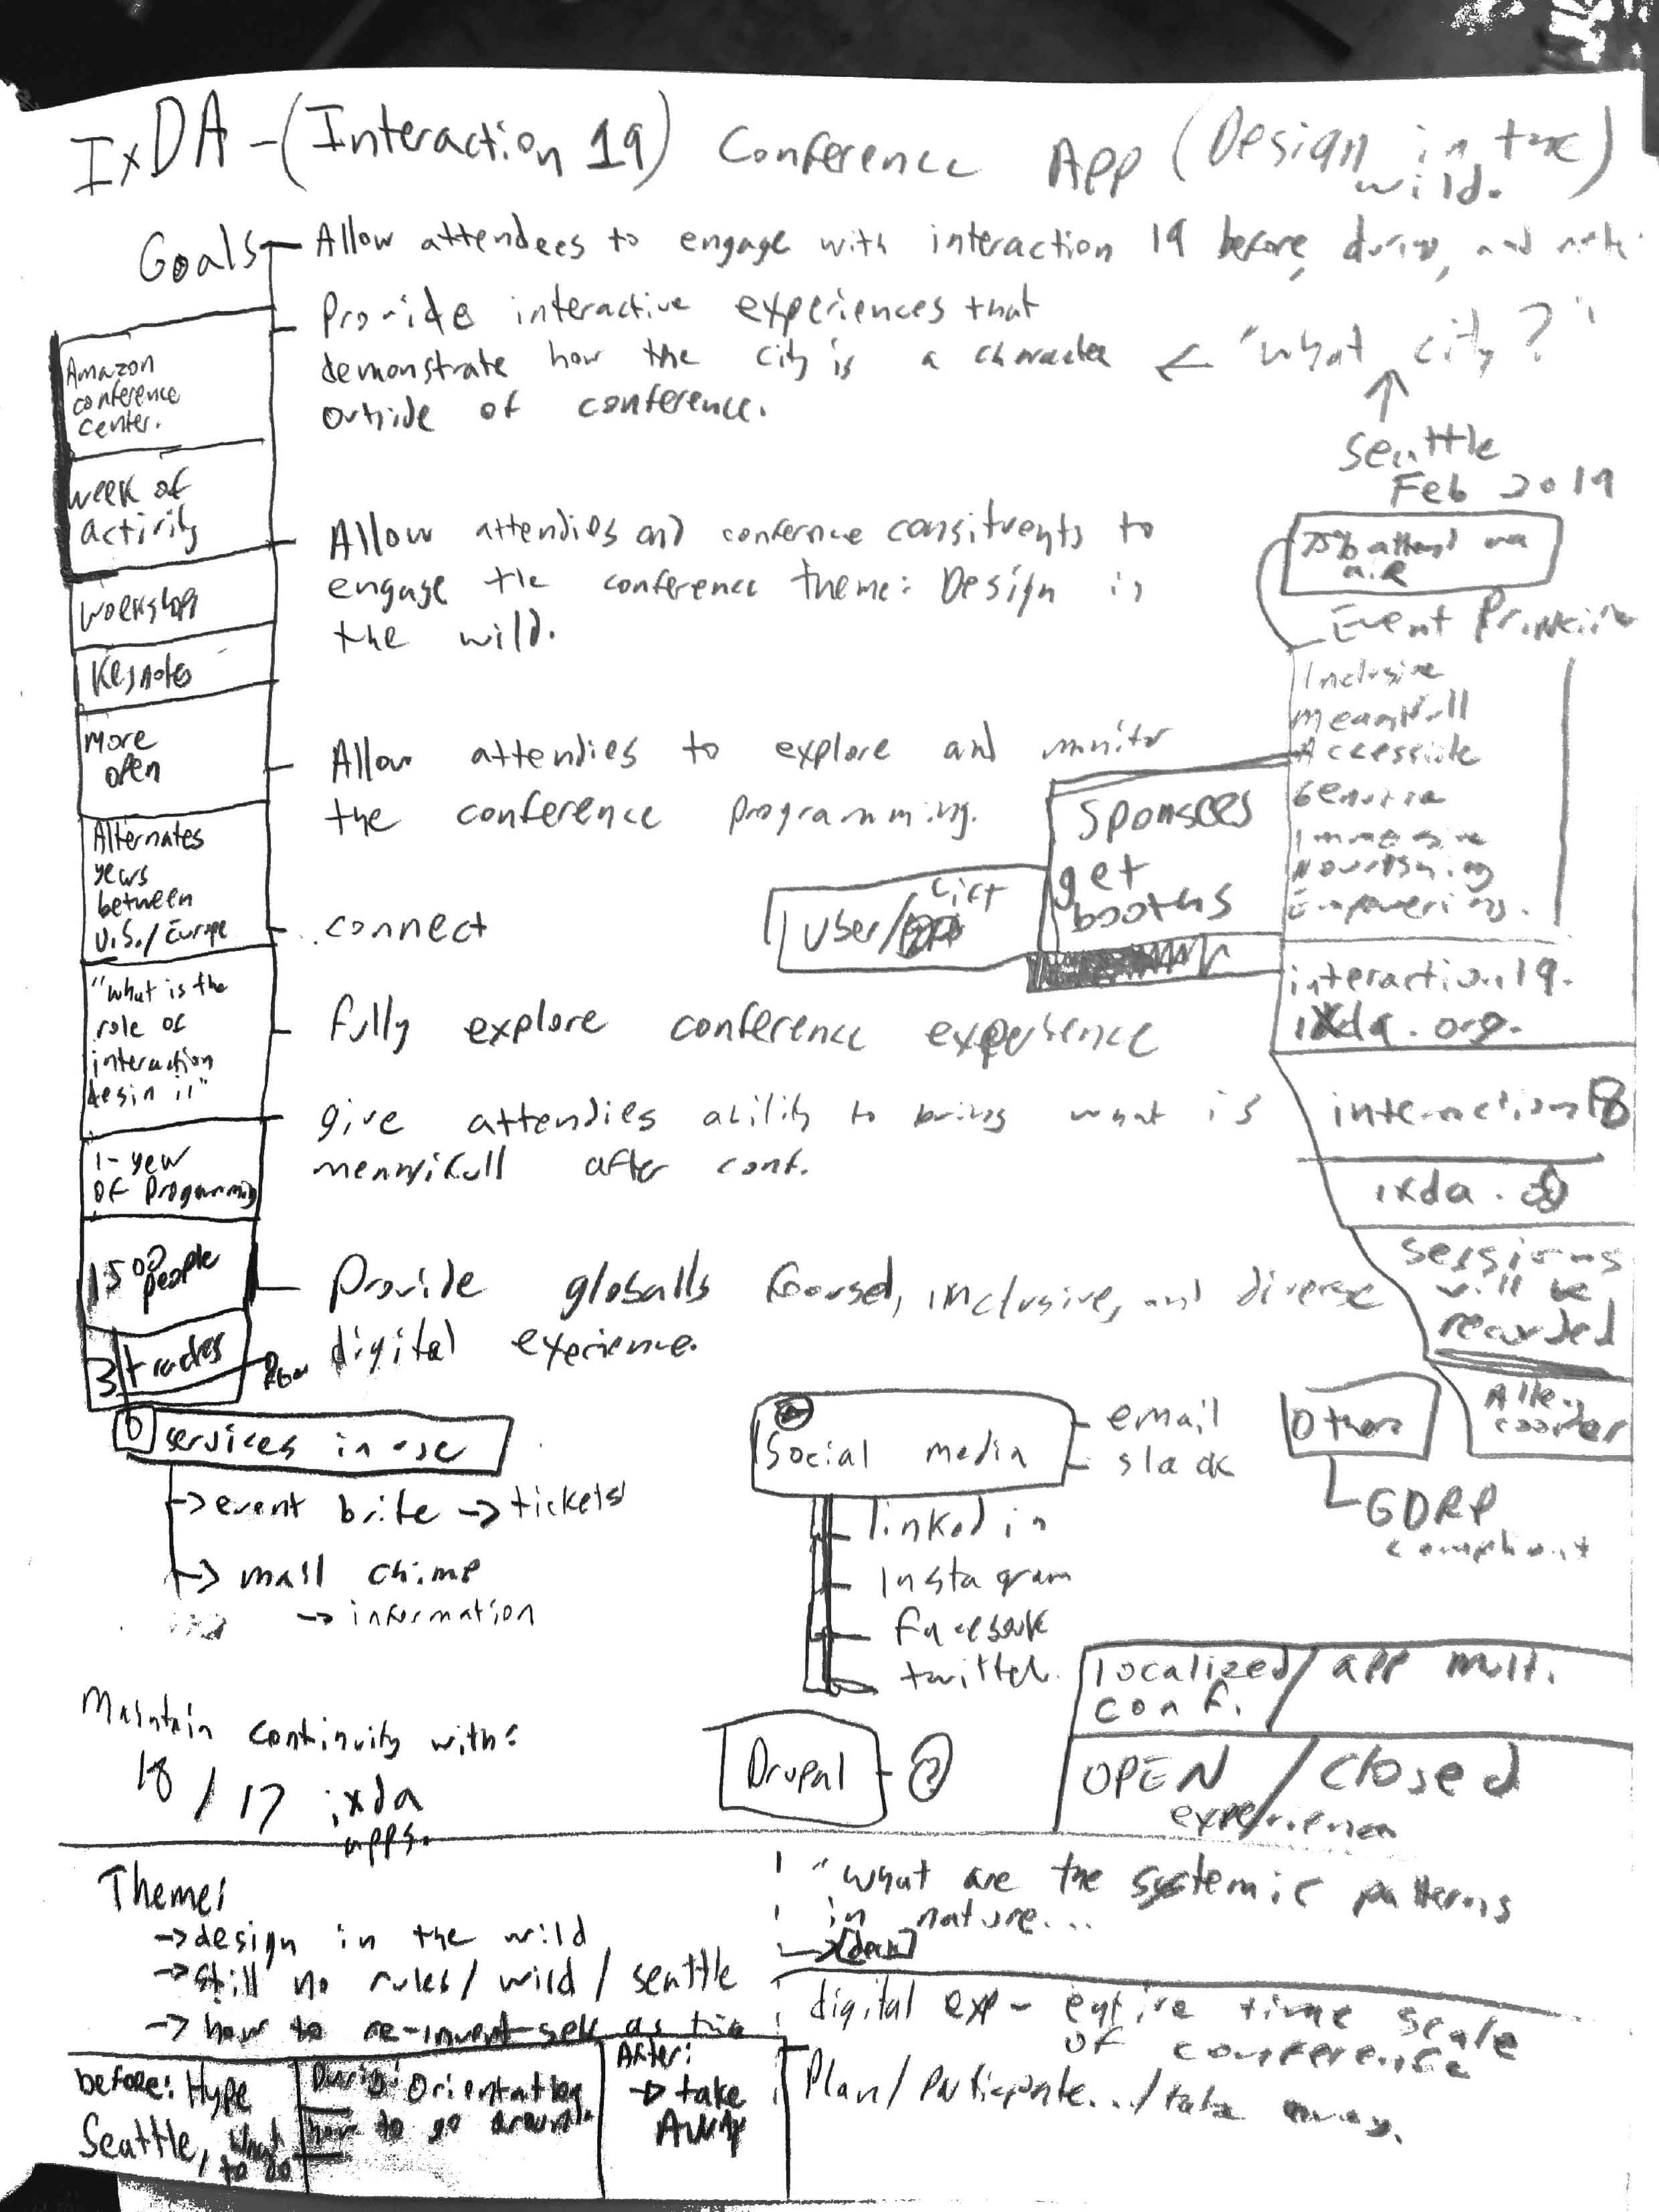 scan of notes from the meeting (click to see full detail)